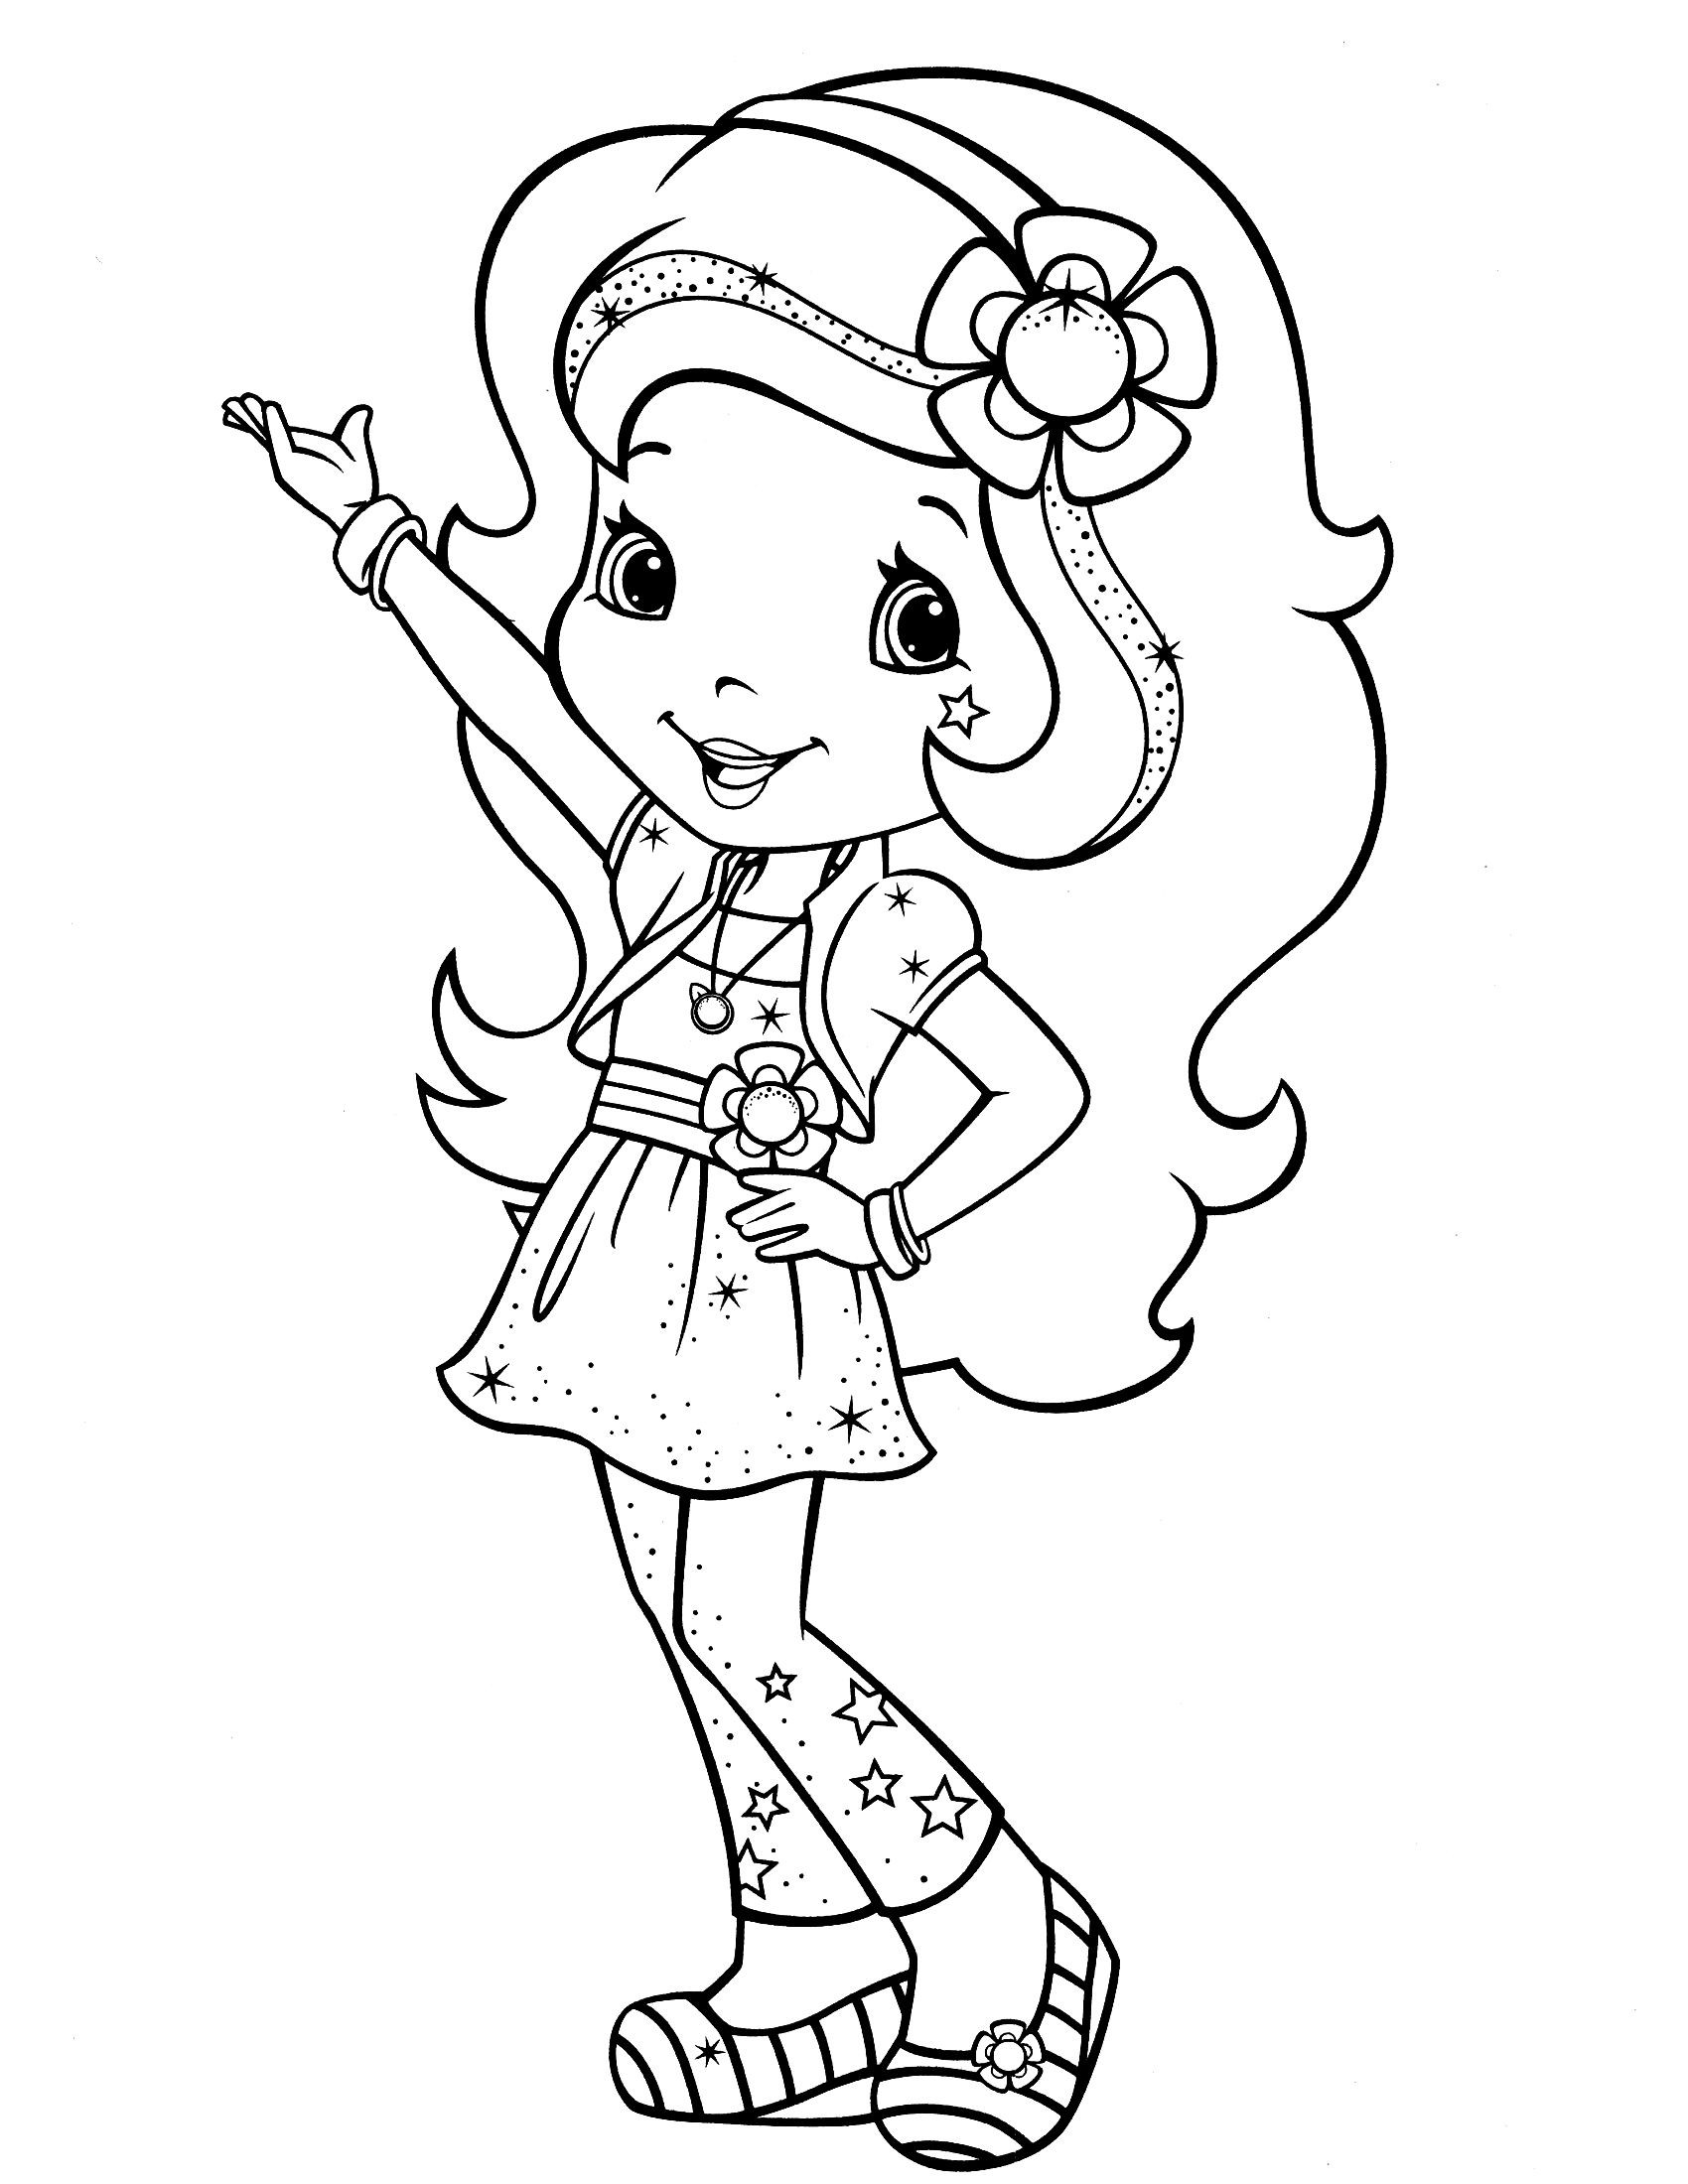 Coloring Sheets For Girls Strawberry Shortcake  Download Strawberry Shortcake coloring pages